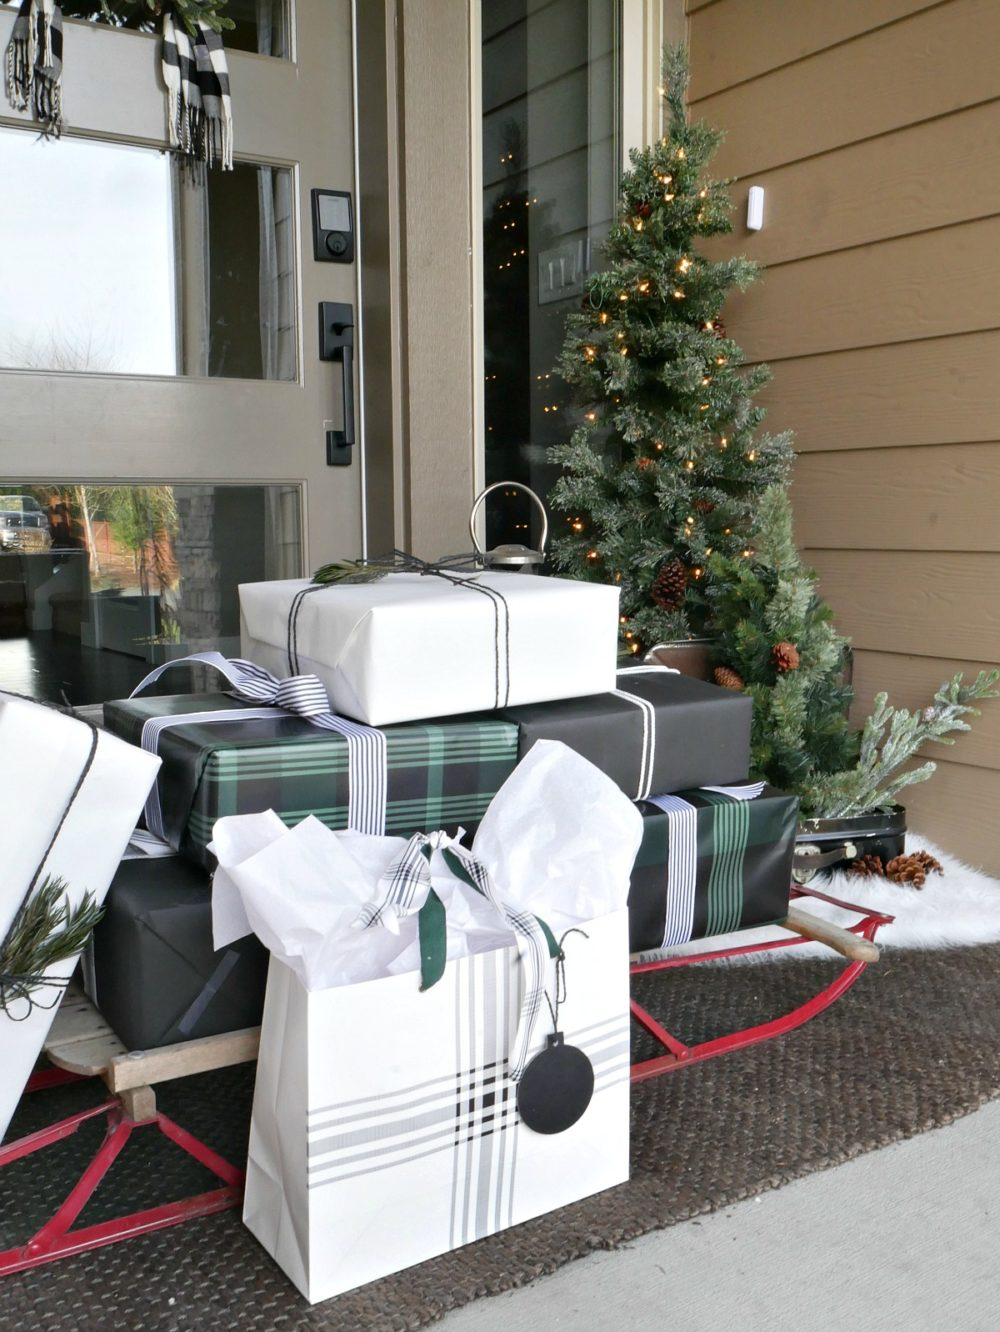 Christmas porch - a welcoming sight with a sleigh of presents